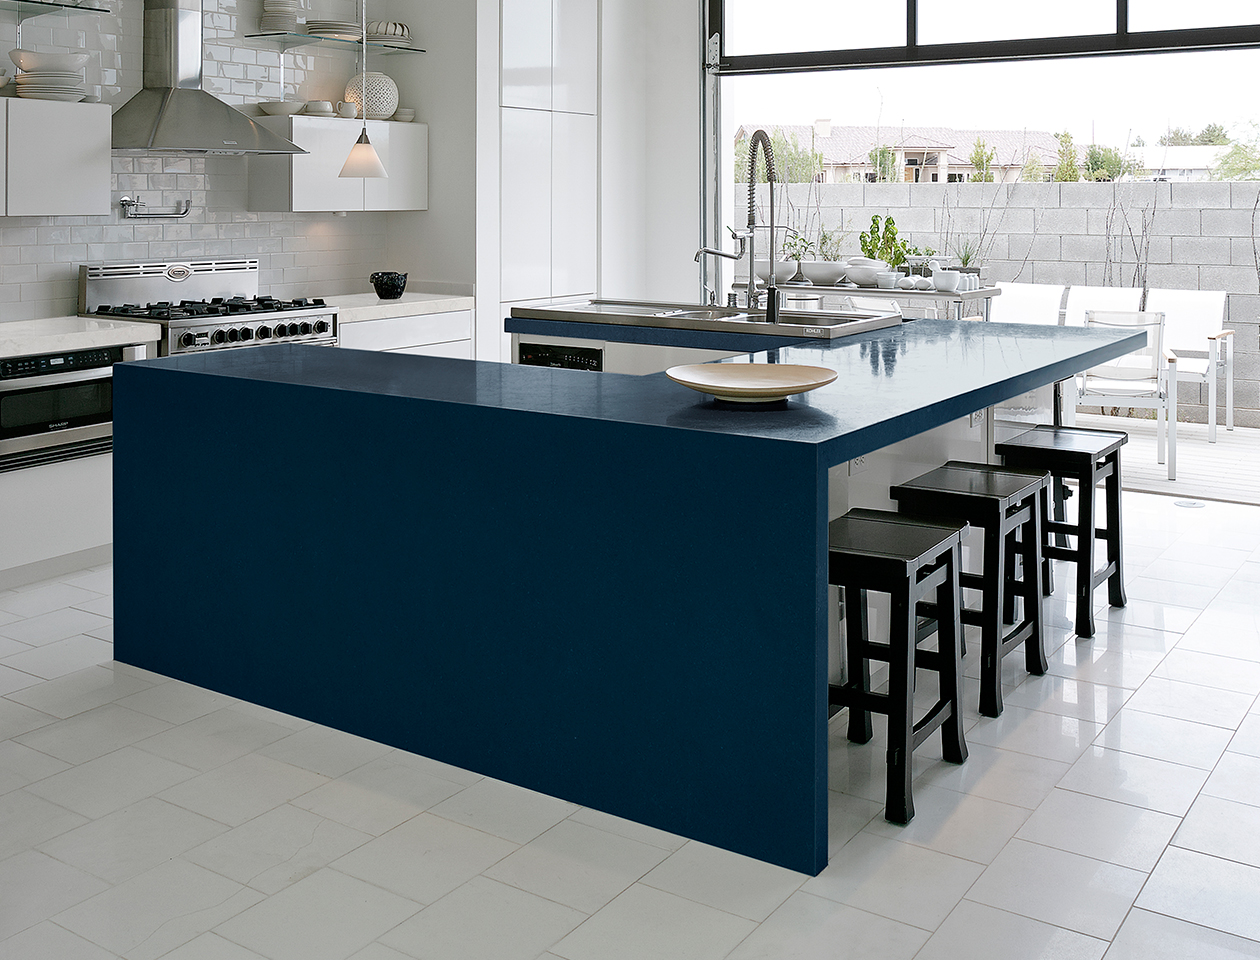 Kitchen Backsplash Trends of 2015 — The Edge Countertops